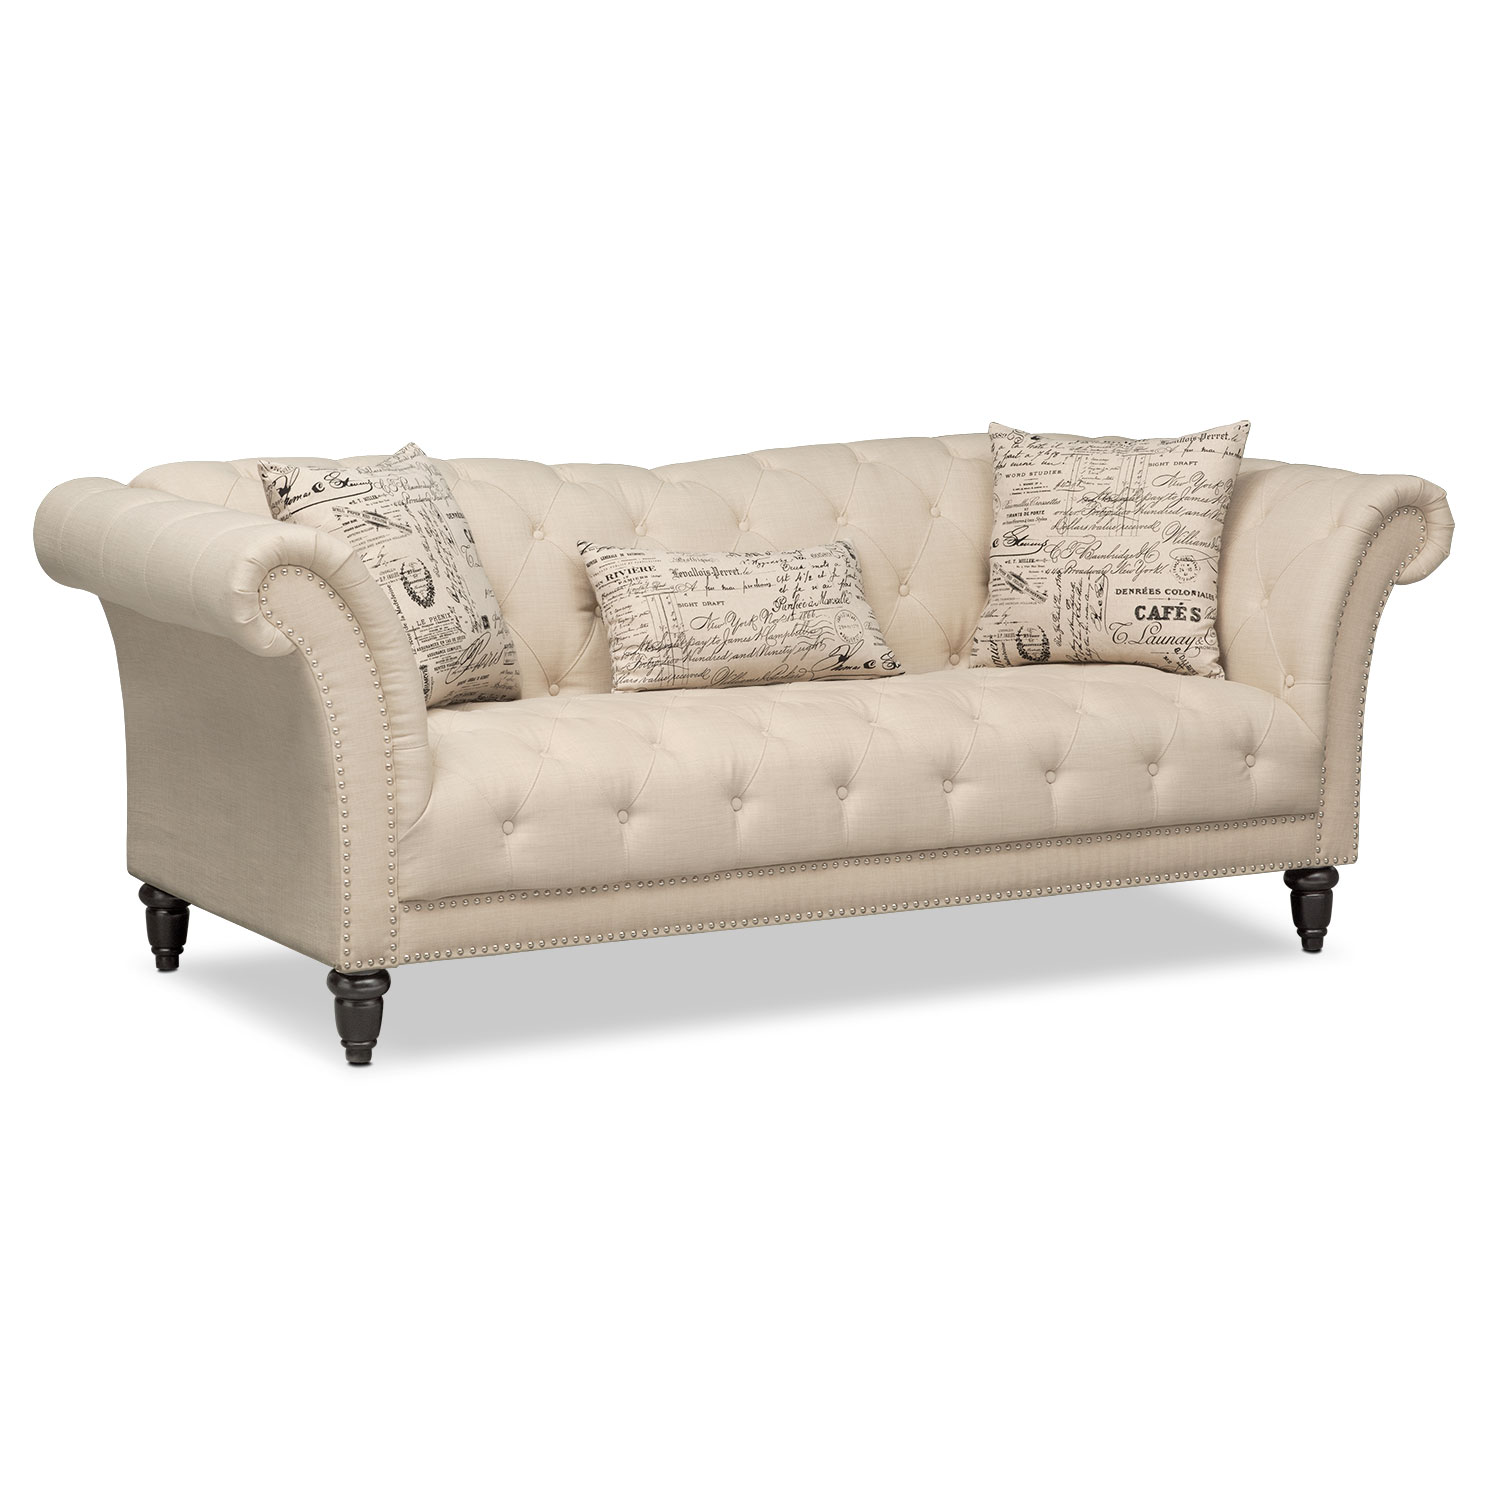 Marisol Sofa Value City Furniture And Mattresses